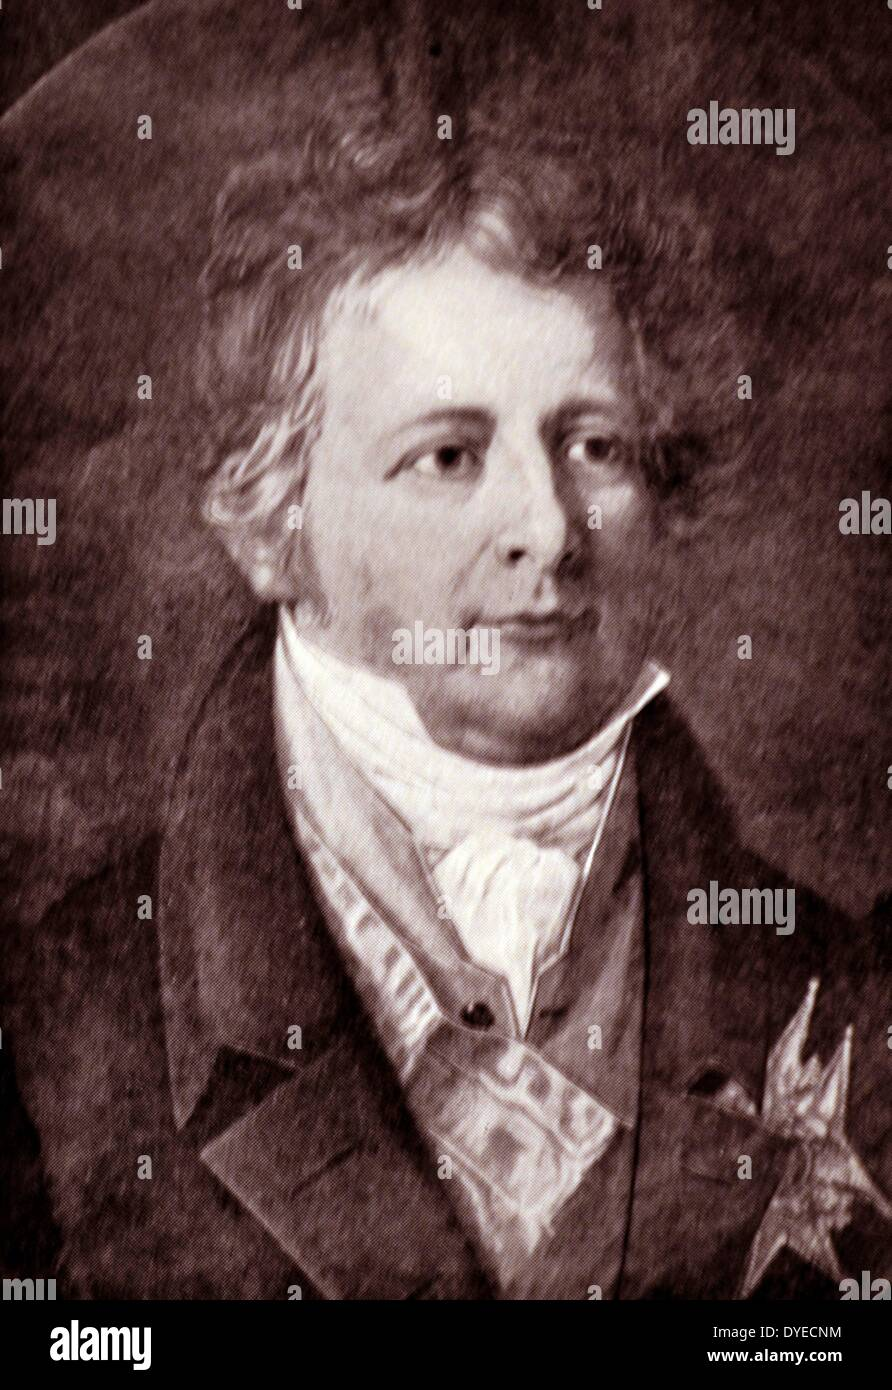 Portrait of Count Wedel Jarlsberg. - Stock Image